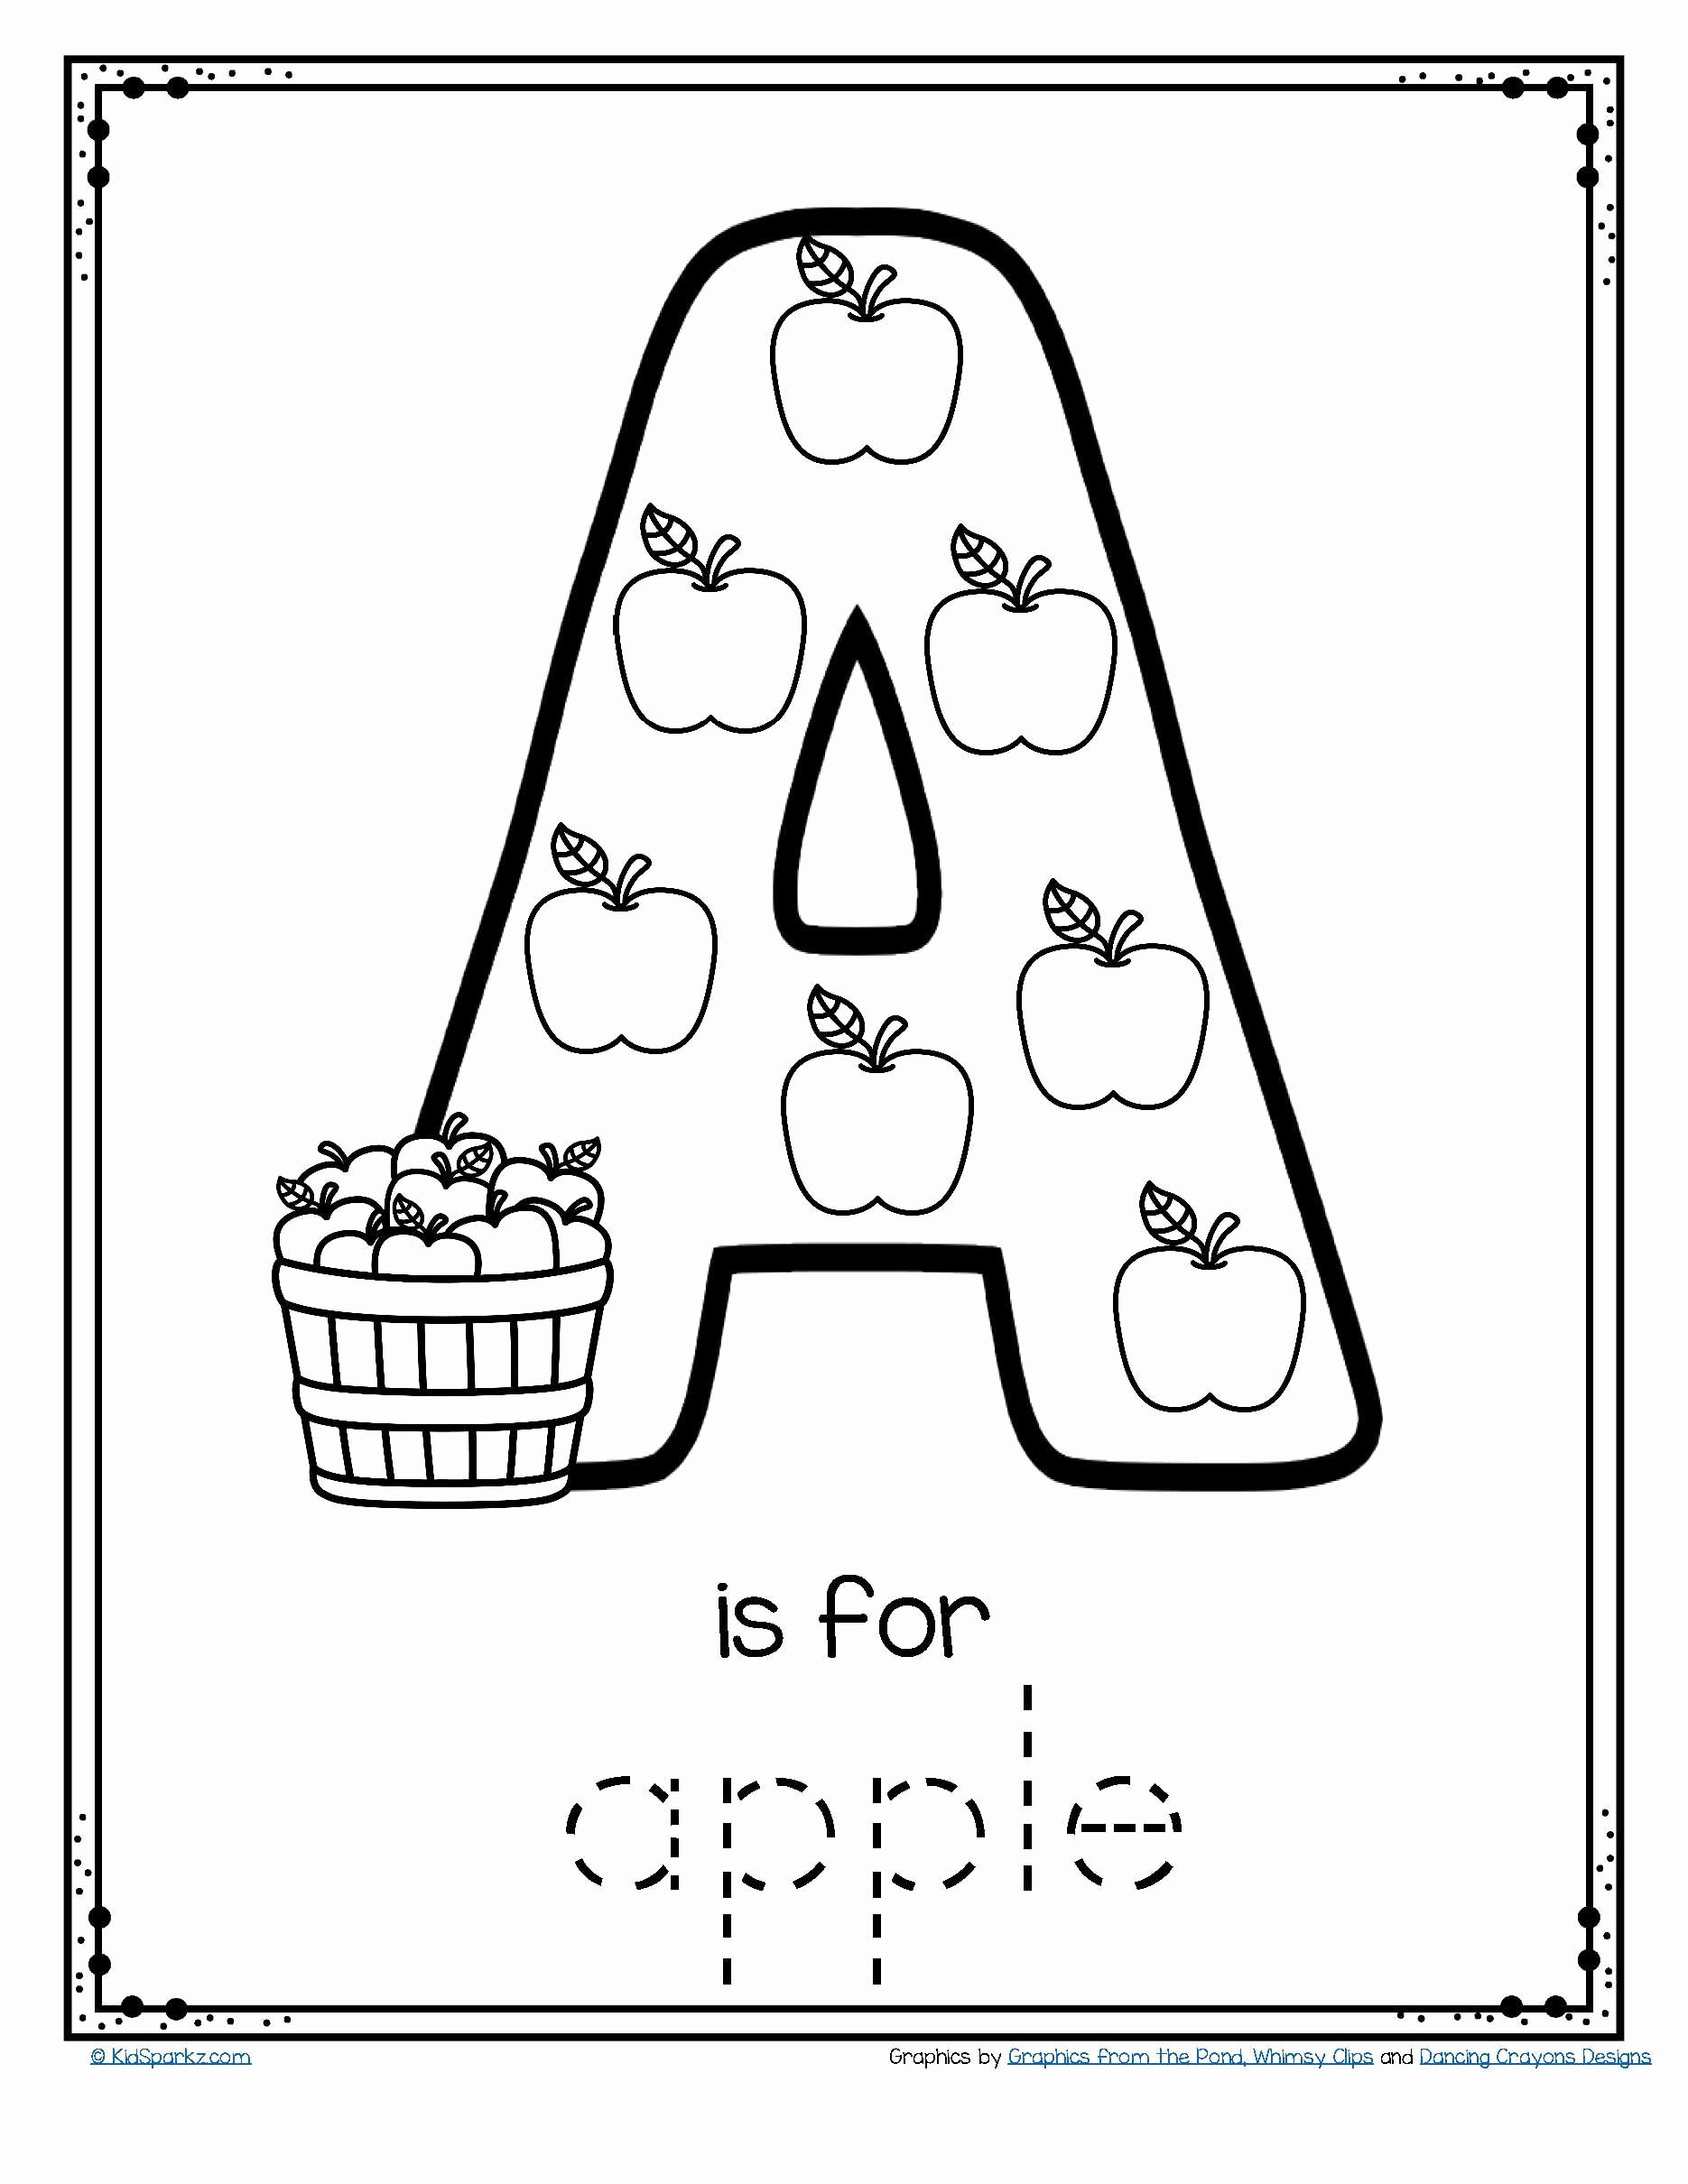 Free Letter A Worksheets for Preschoolers Kids Letter A is for Apple Trace and Color Printable Free